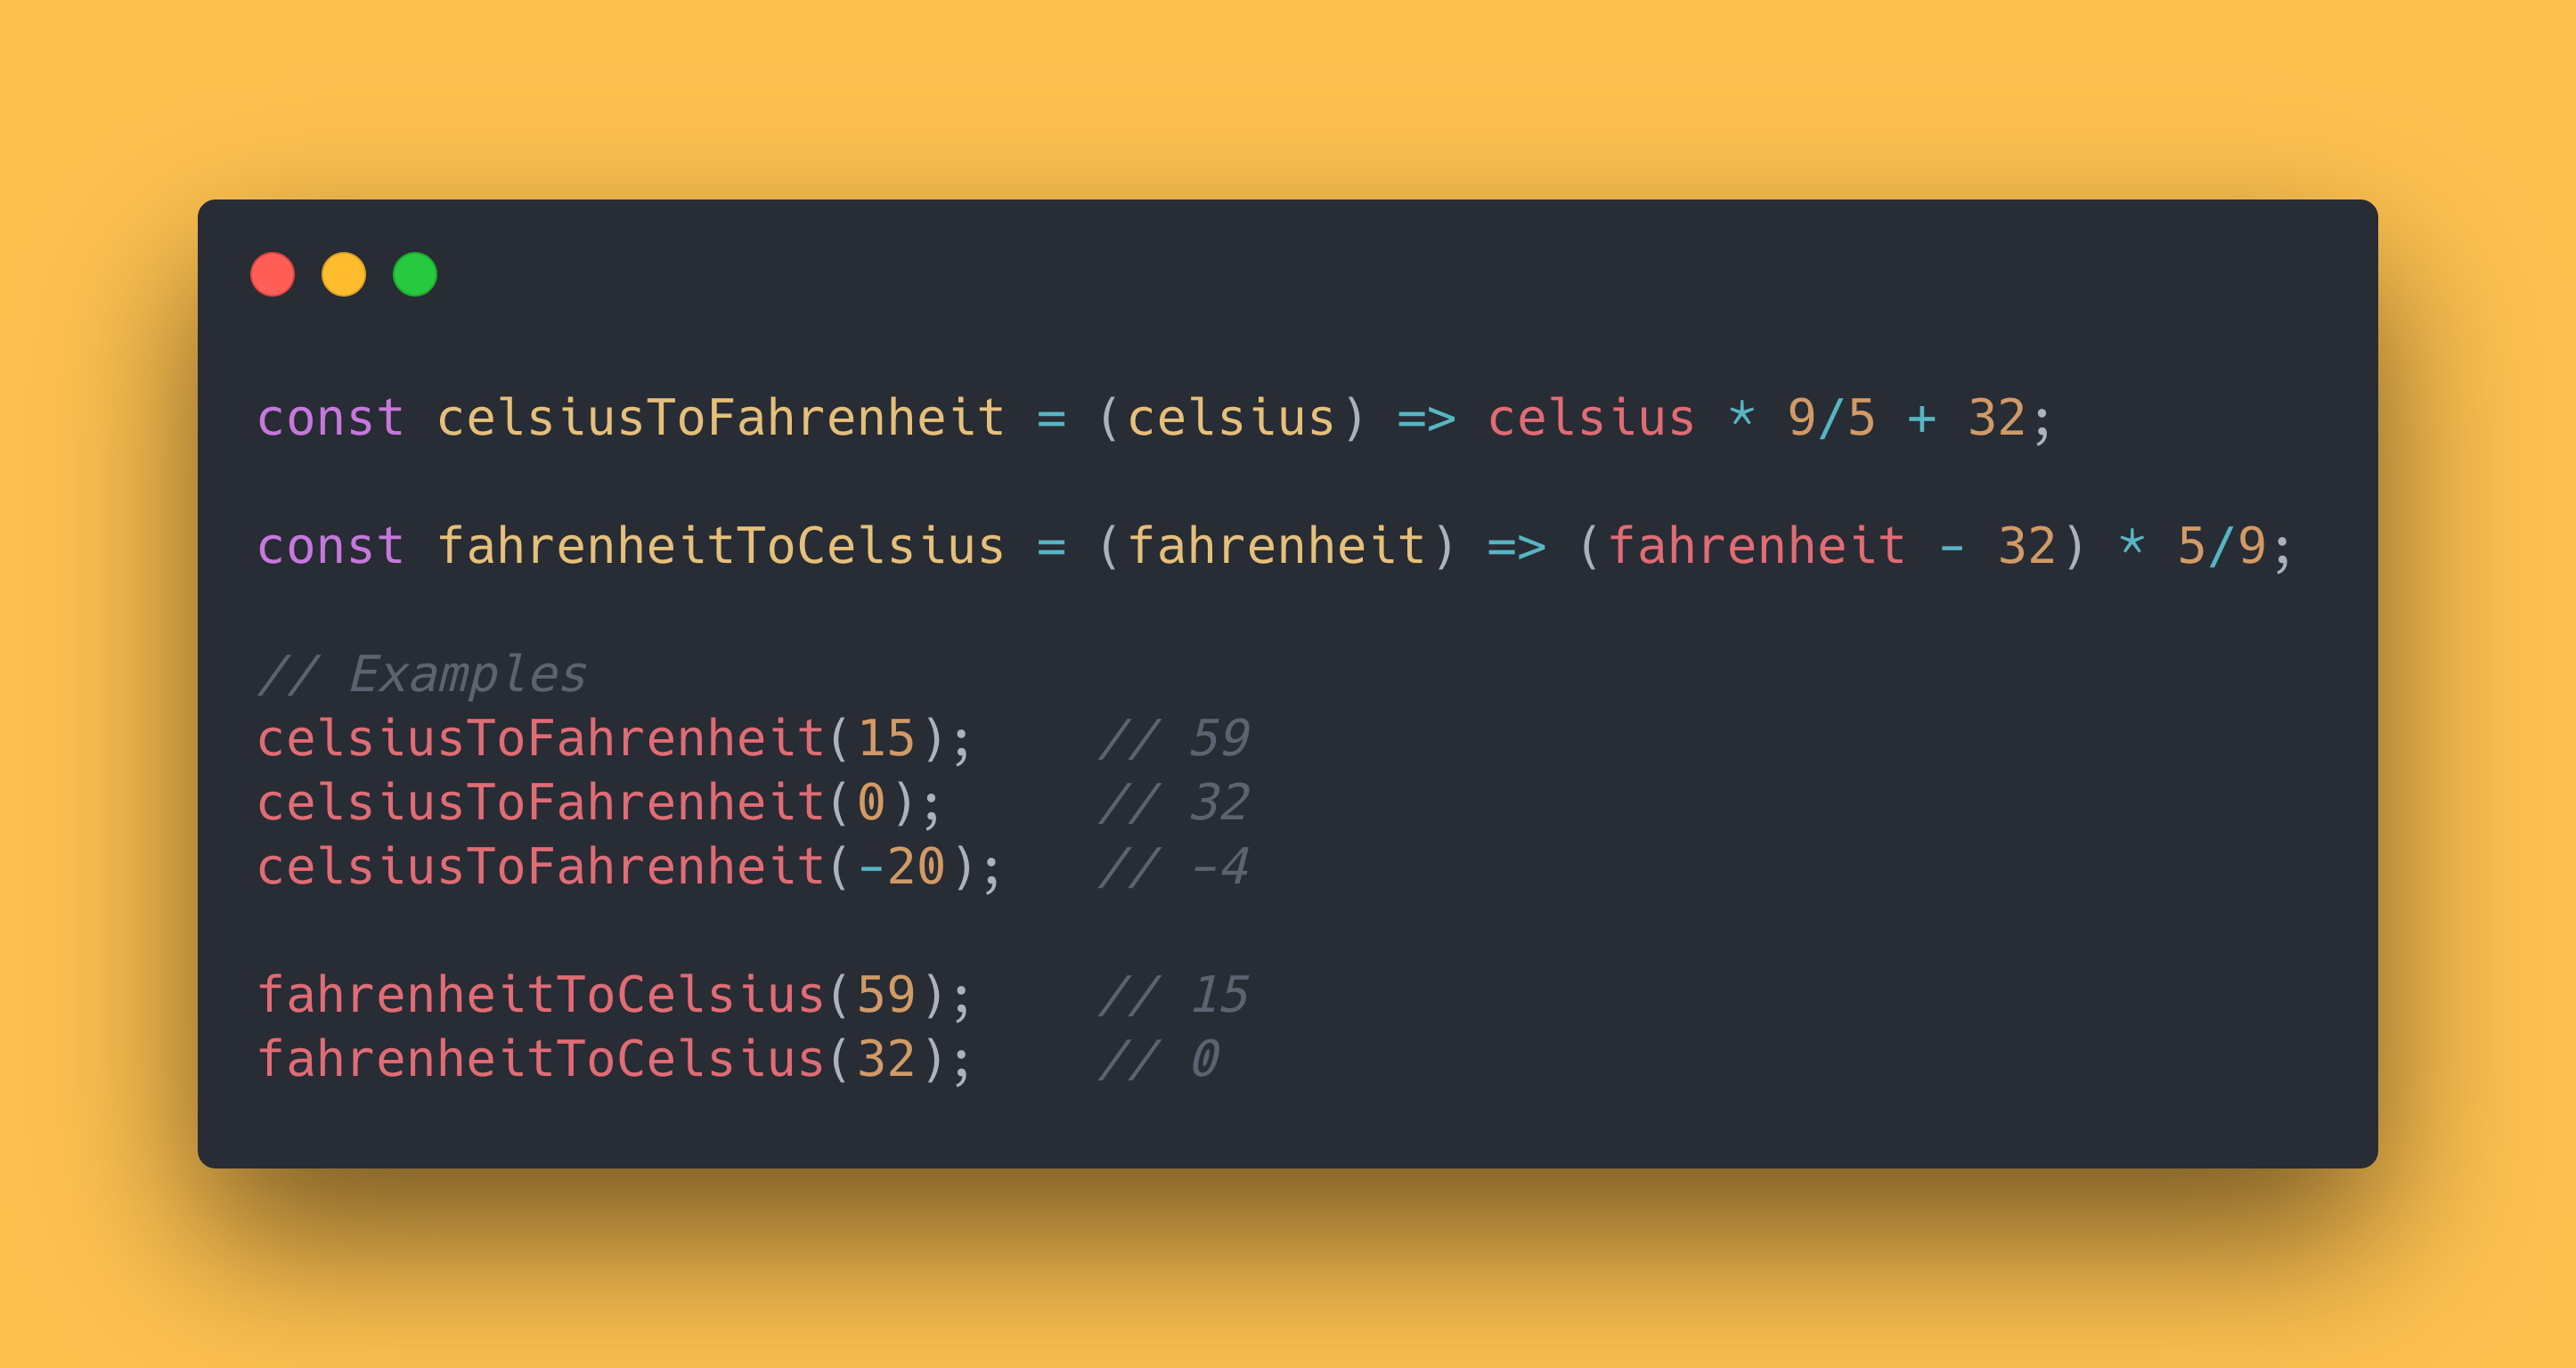 JS code block showing how to convert Fahrenheit to Celsius and the other way around.